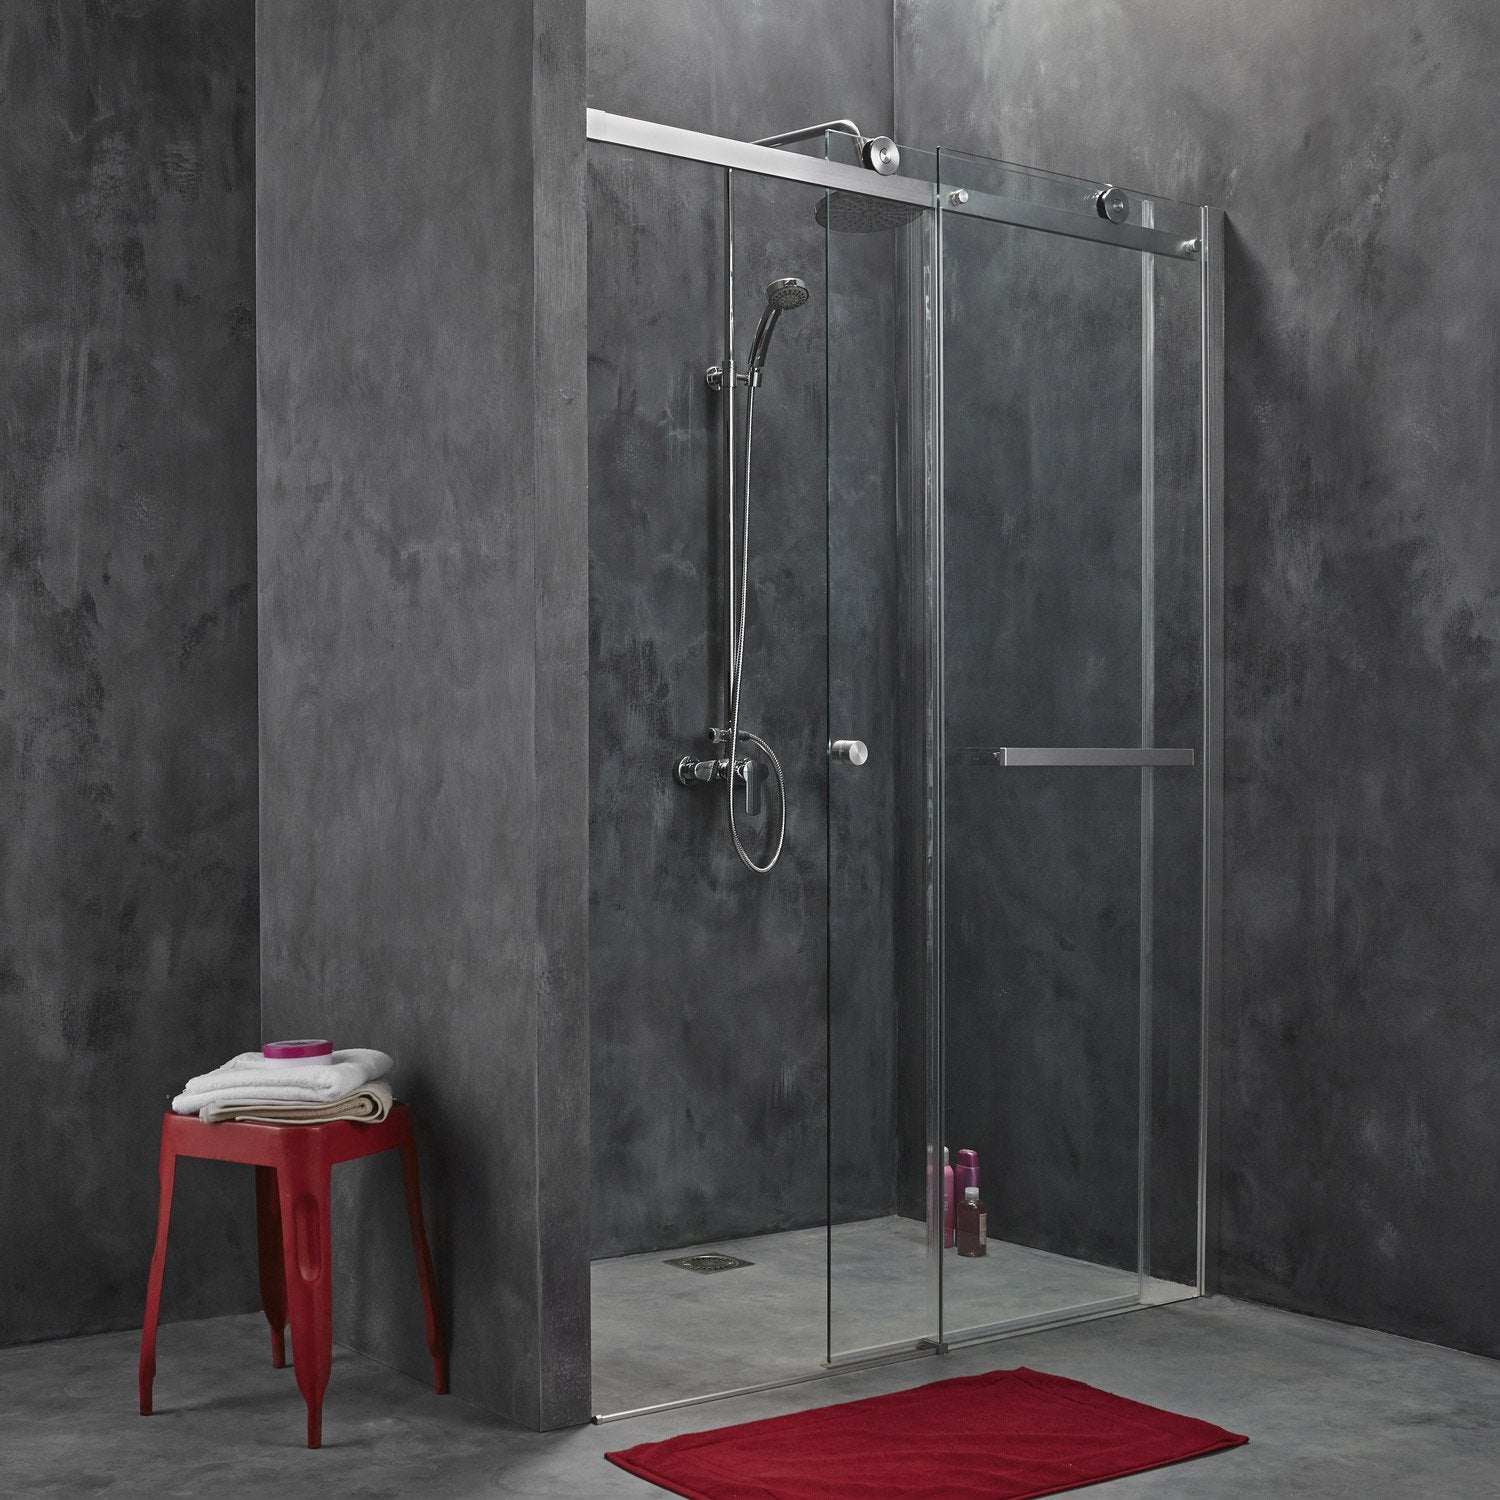 porte de douche coulissante fabrik verre transparent chrom 140 cm leroy merlin. Black Bedroom Furniture Sets. Home Design Ideas